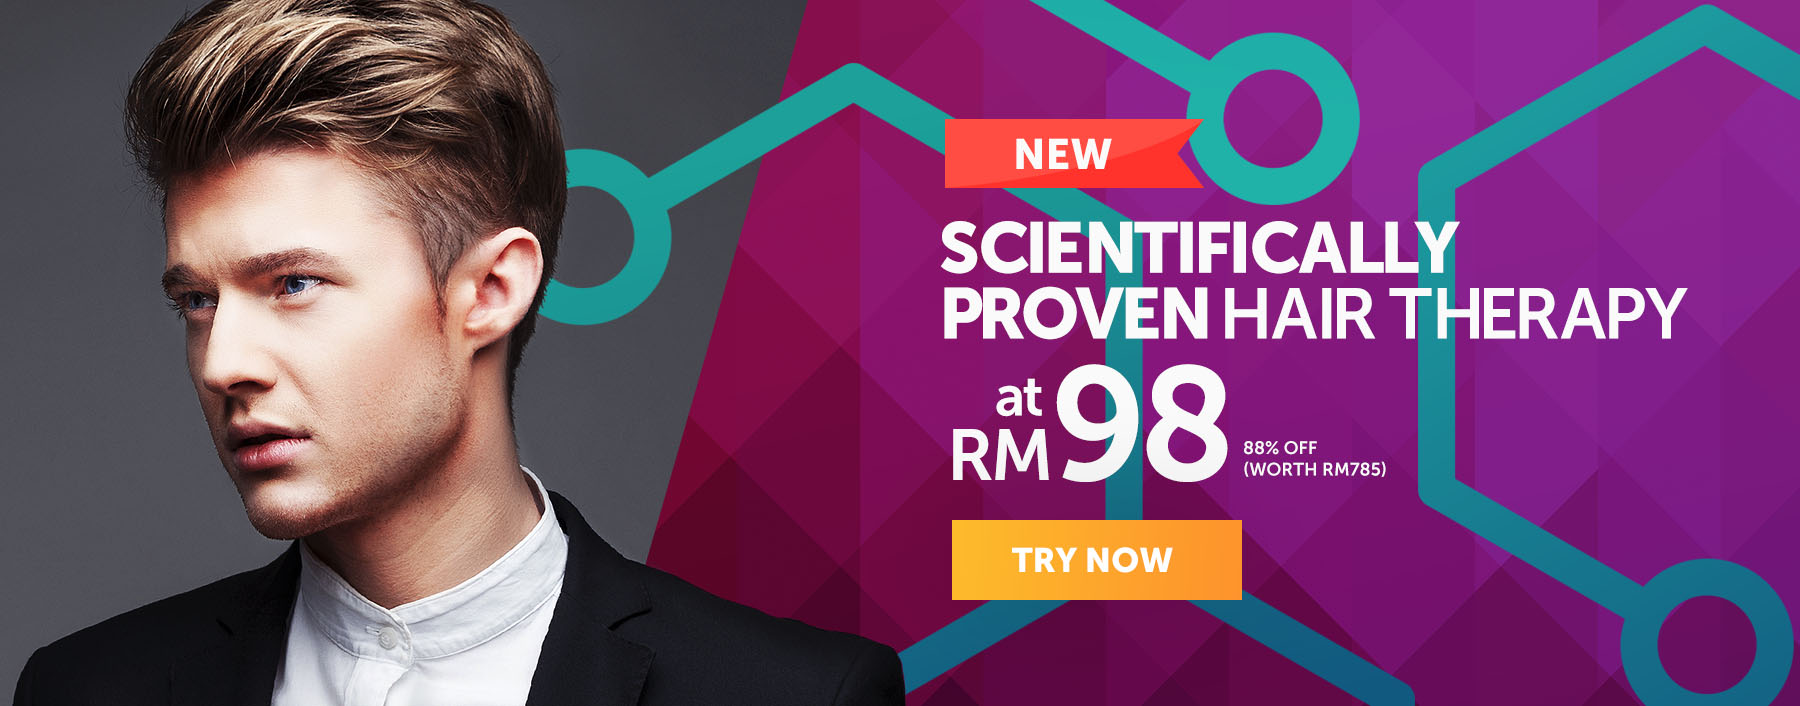 Scientifically Proven Hair Therapy, only RM98